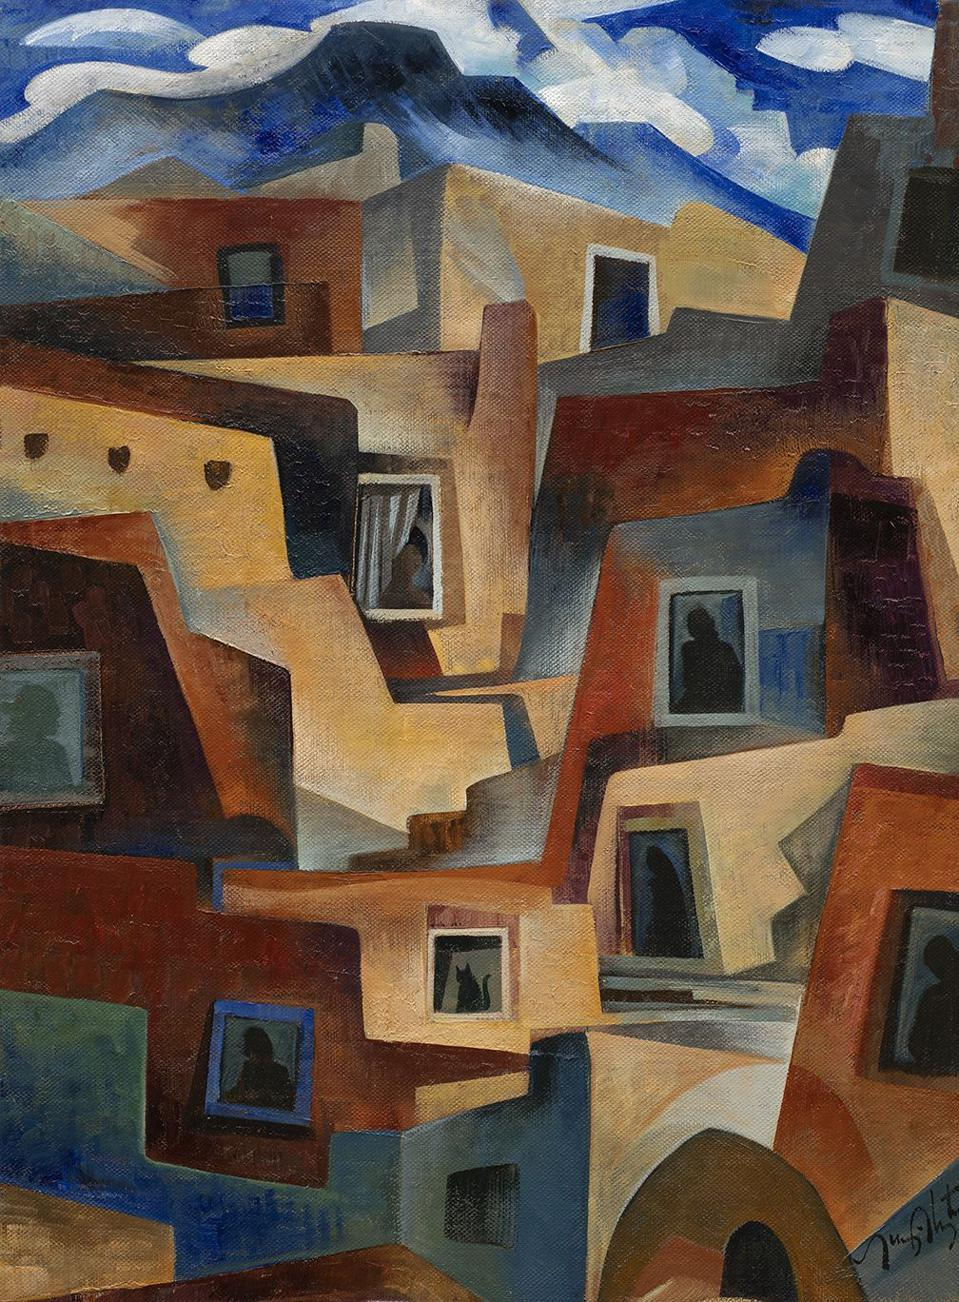 Tony Abeyta, ″March 2020,″ (2020). Oil on canvas 24 x 18 inches. Courtesy of the artist and The Owings Gallery.